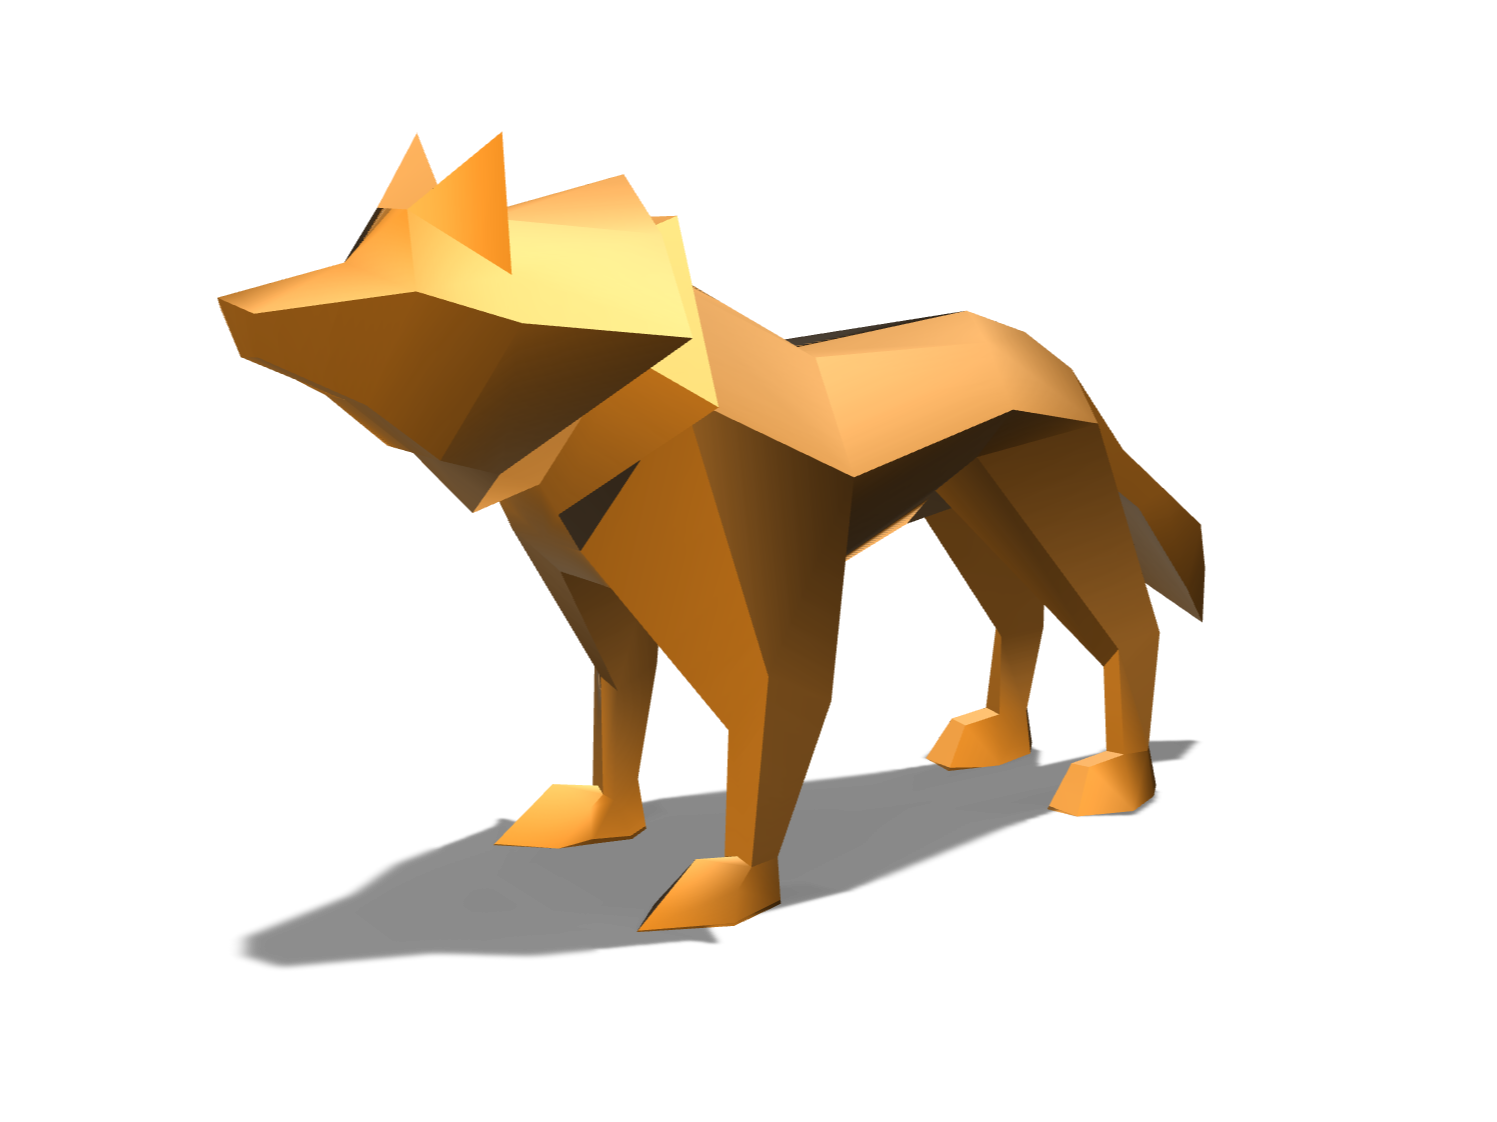 Low poly wolf - 3D design by Youri Lepointe on Dec 11, 2017